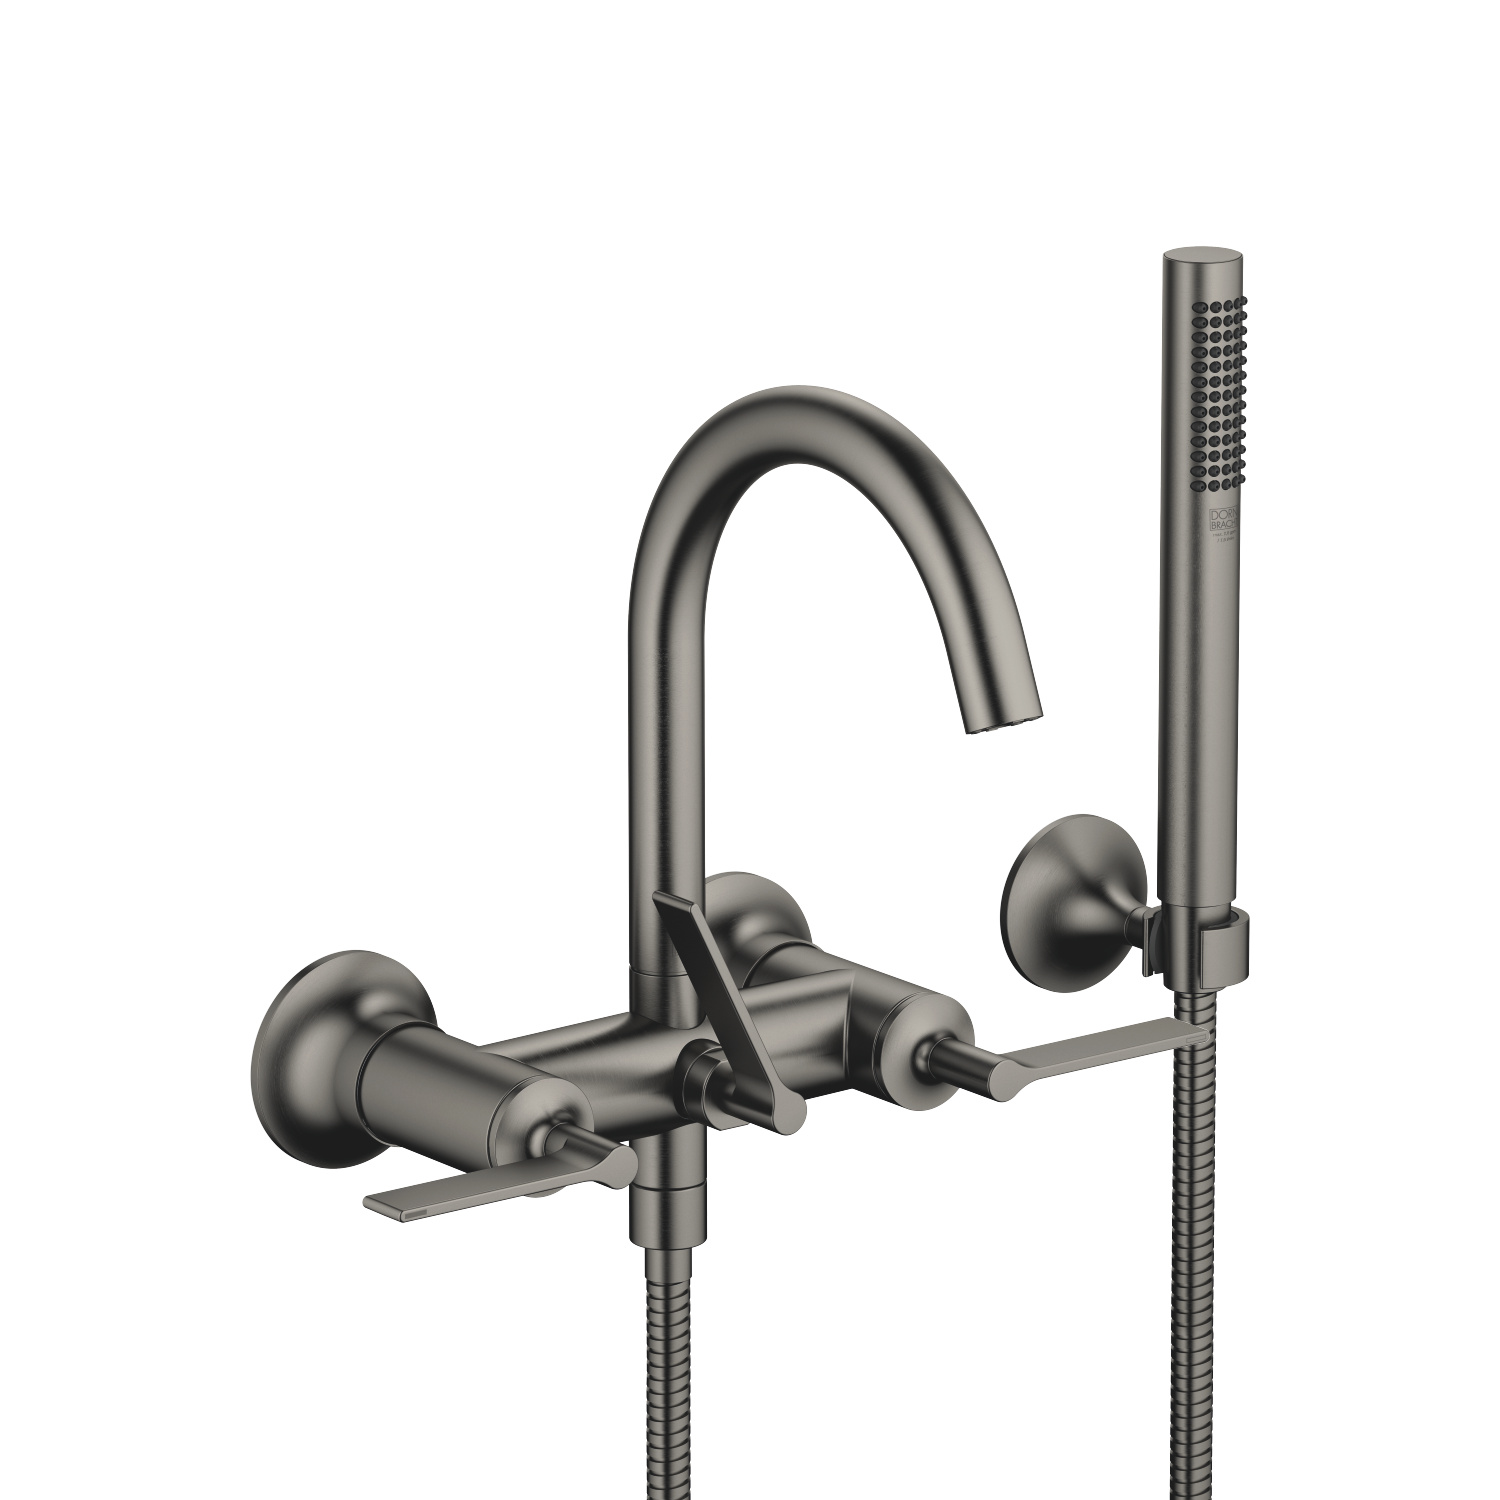 Tub mixer for wall-mounted installation with hand shower set - Dark Platinum matte - 25 133 819-99